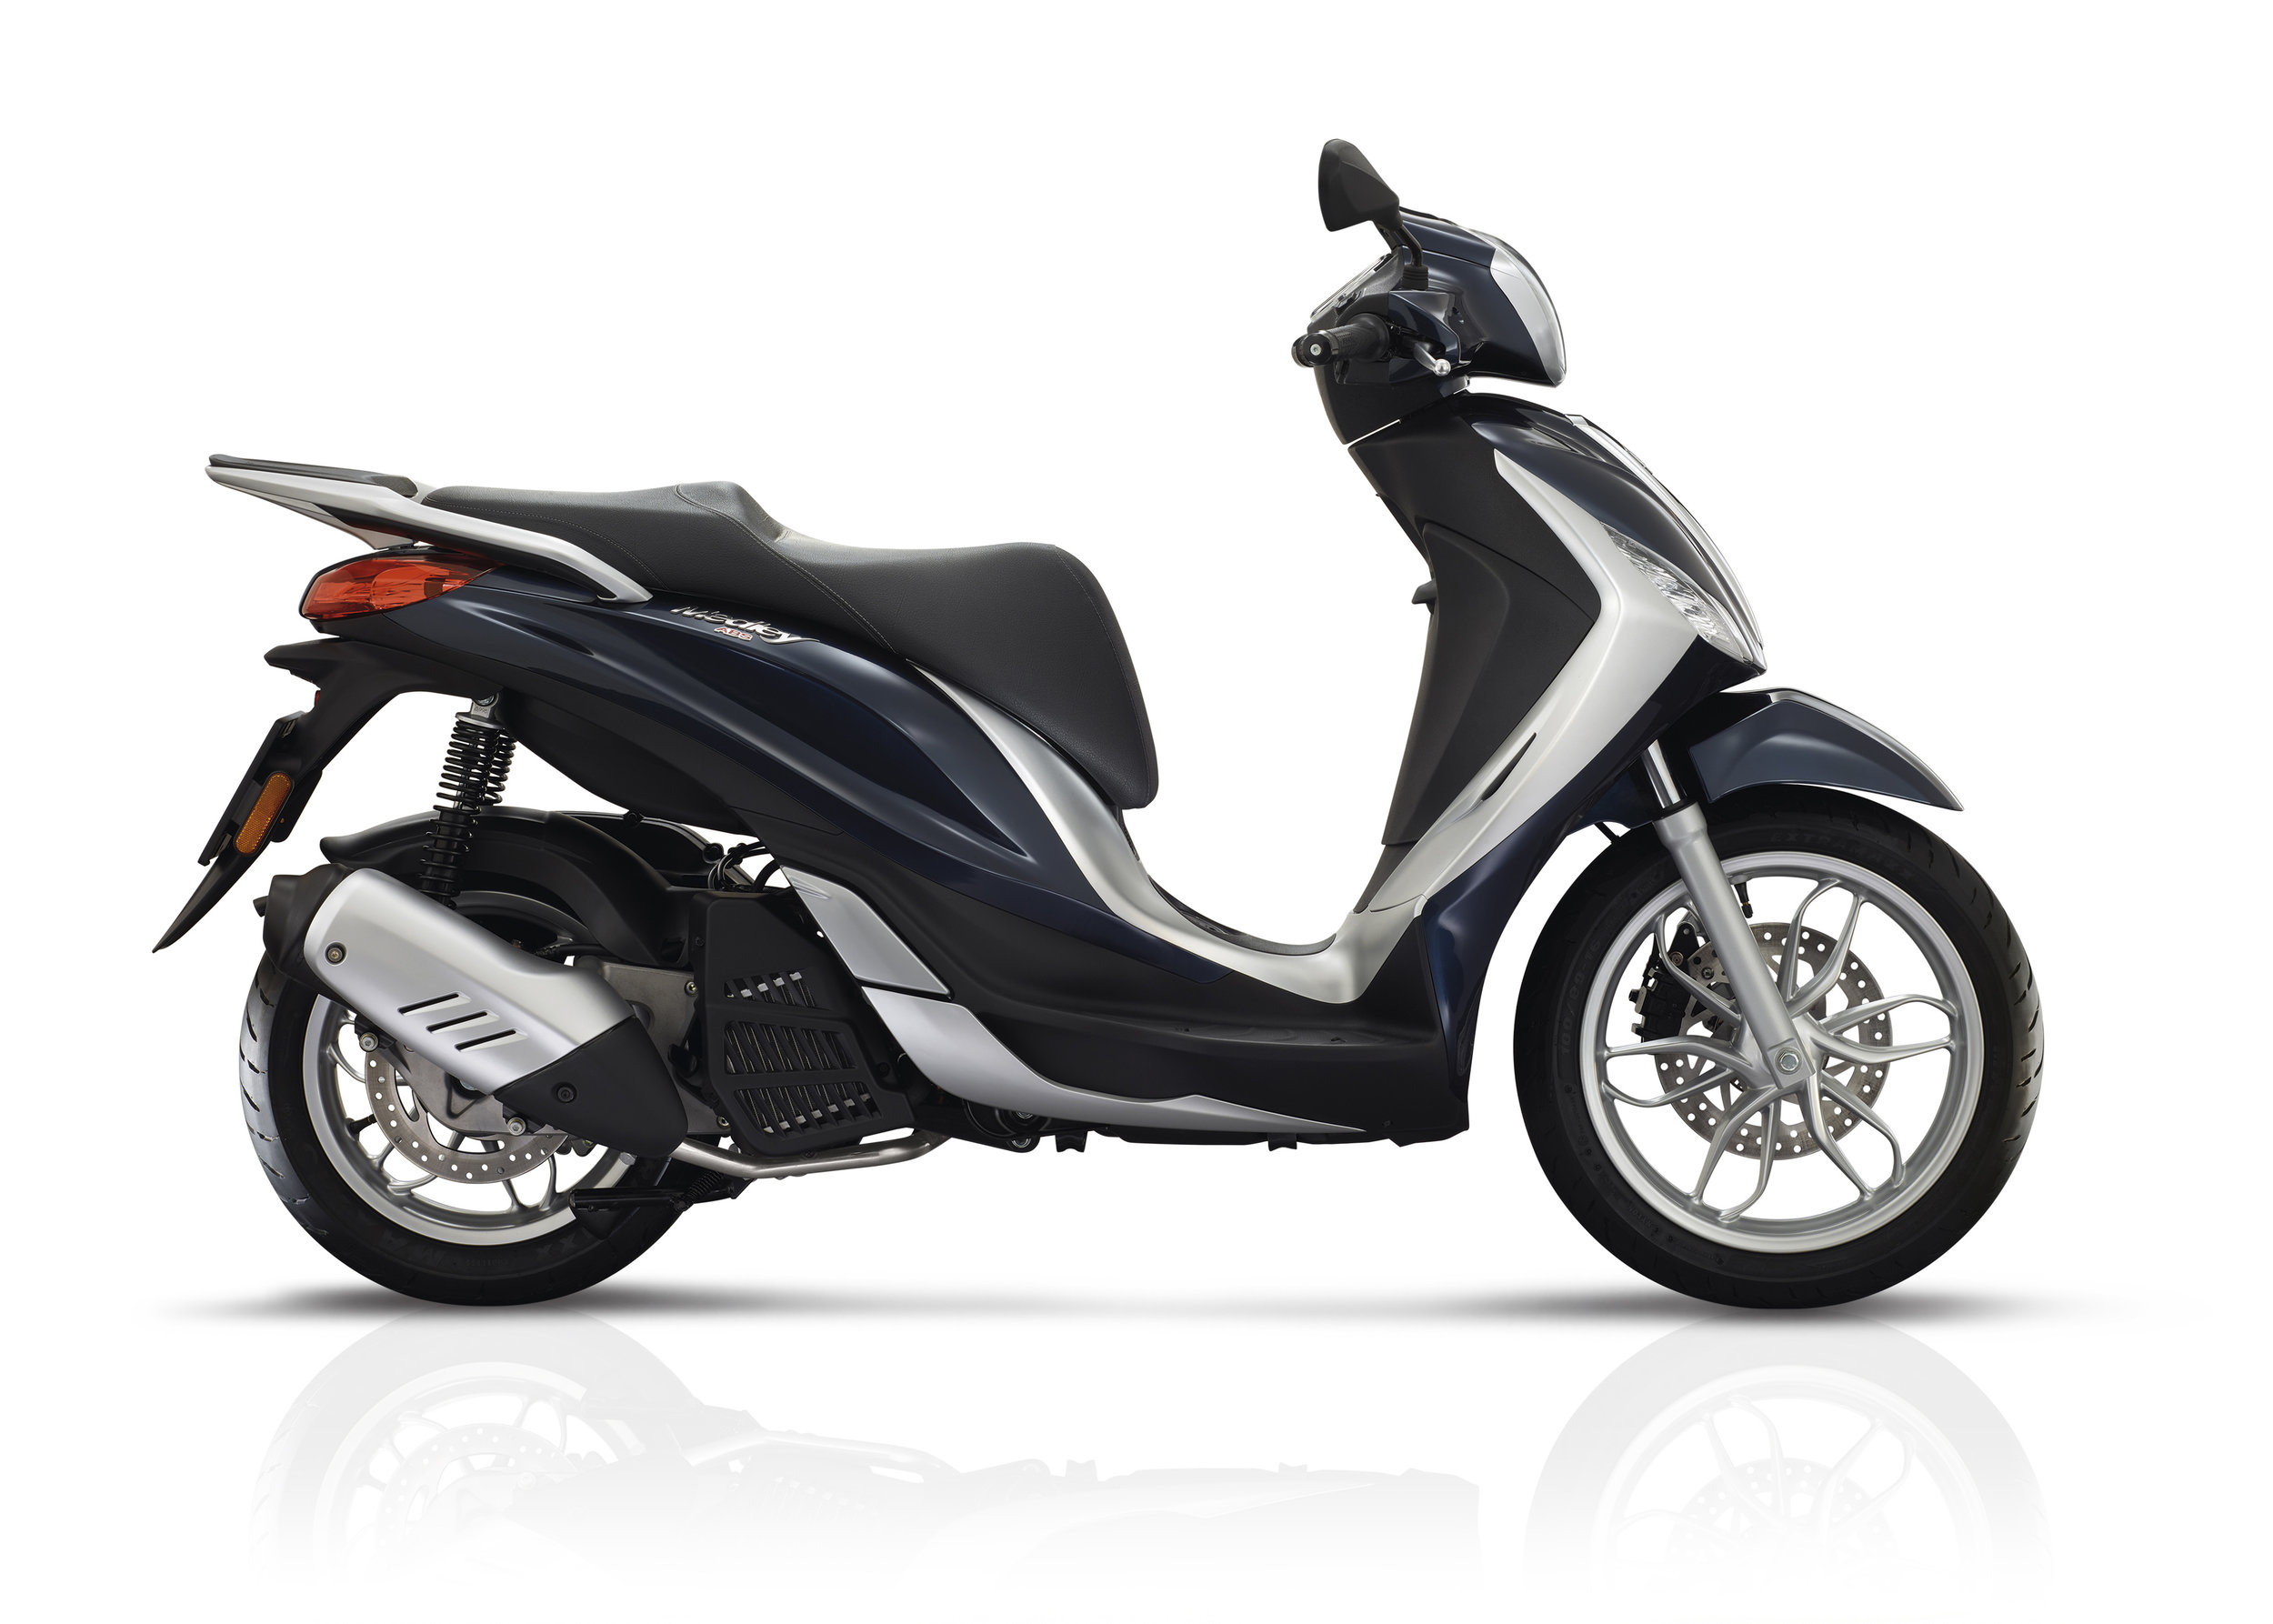 Piaggio Medley 125 equipped lateral dx 09.jpg